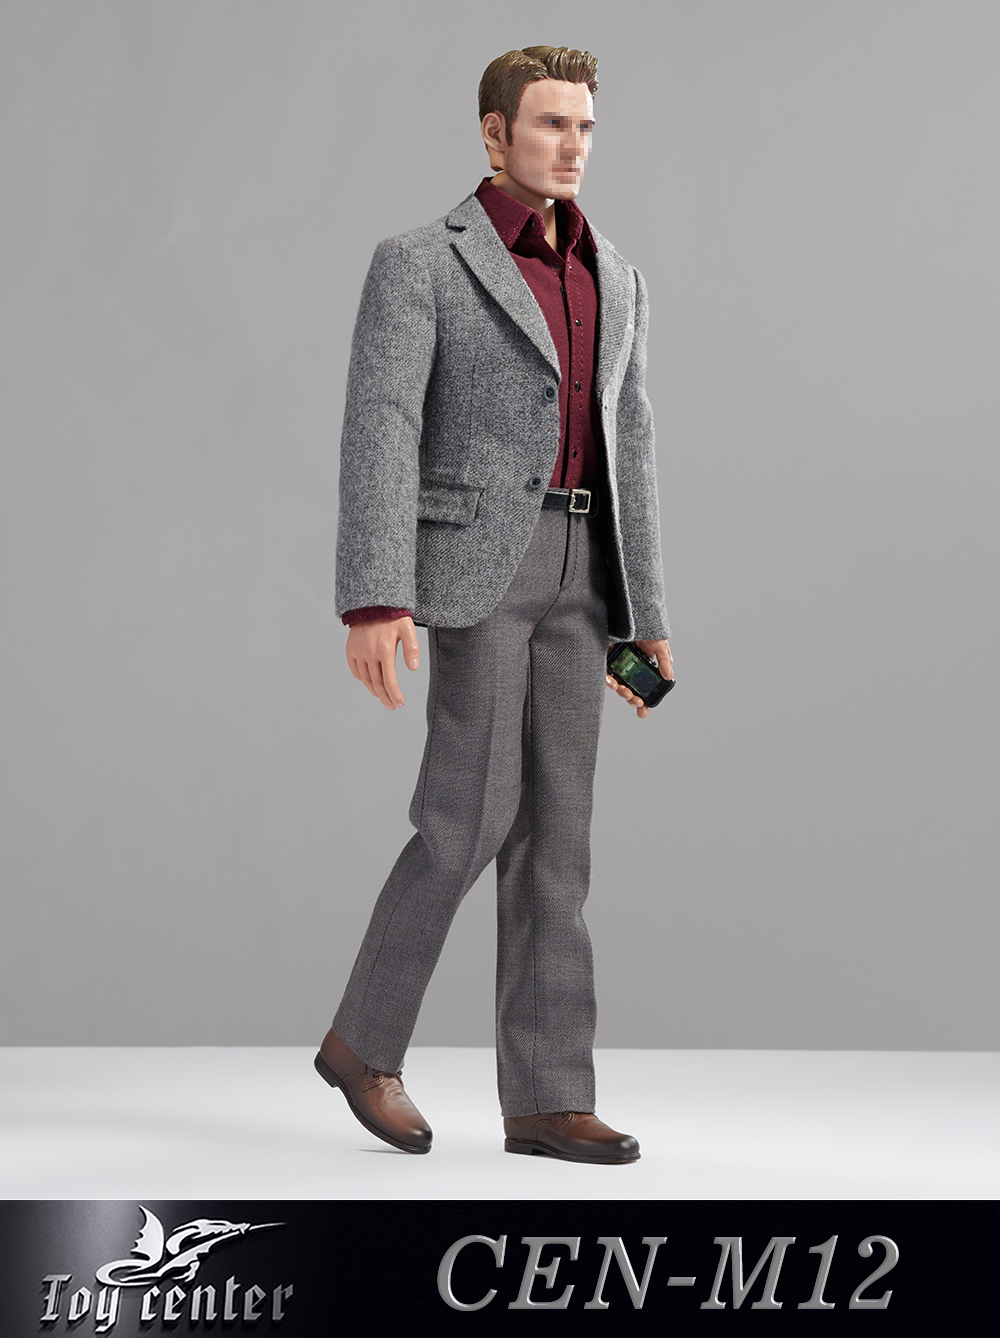 clothes - NEW PRODUCT: Toy center: 1/6 US team old casual suit CEN-M12# 16064310